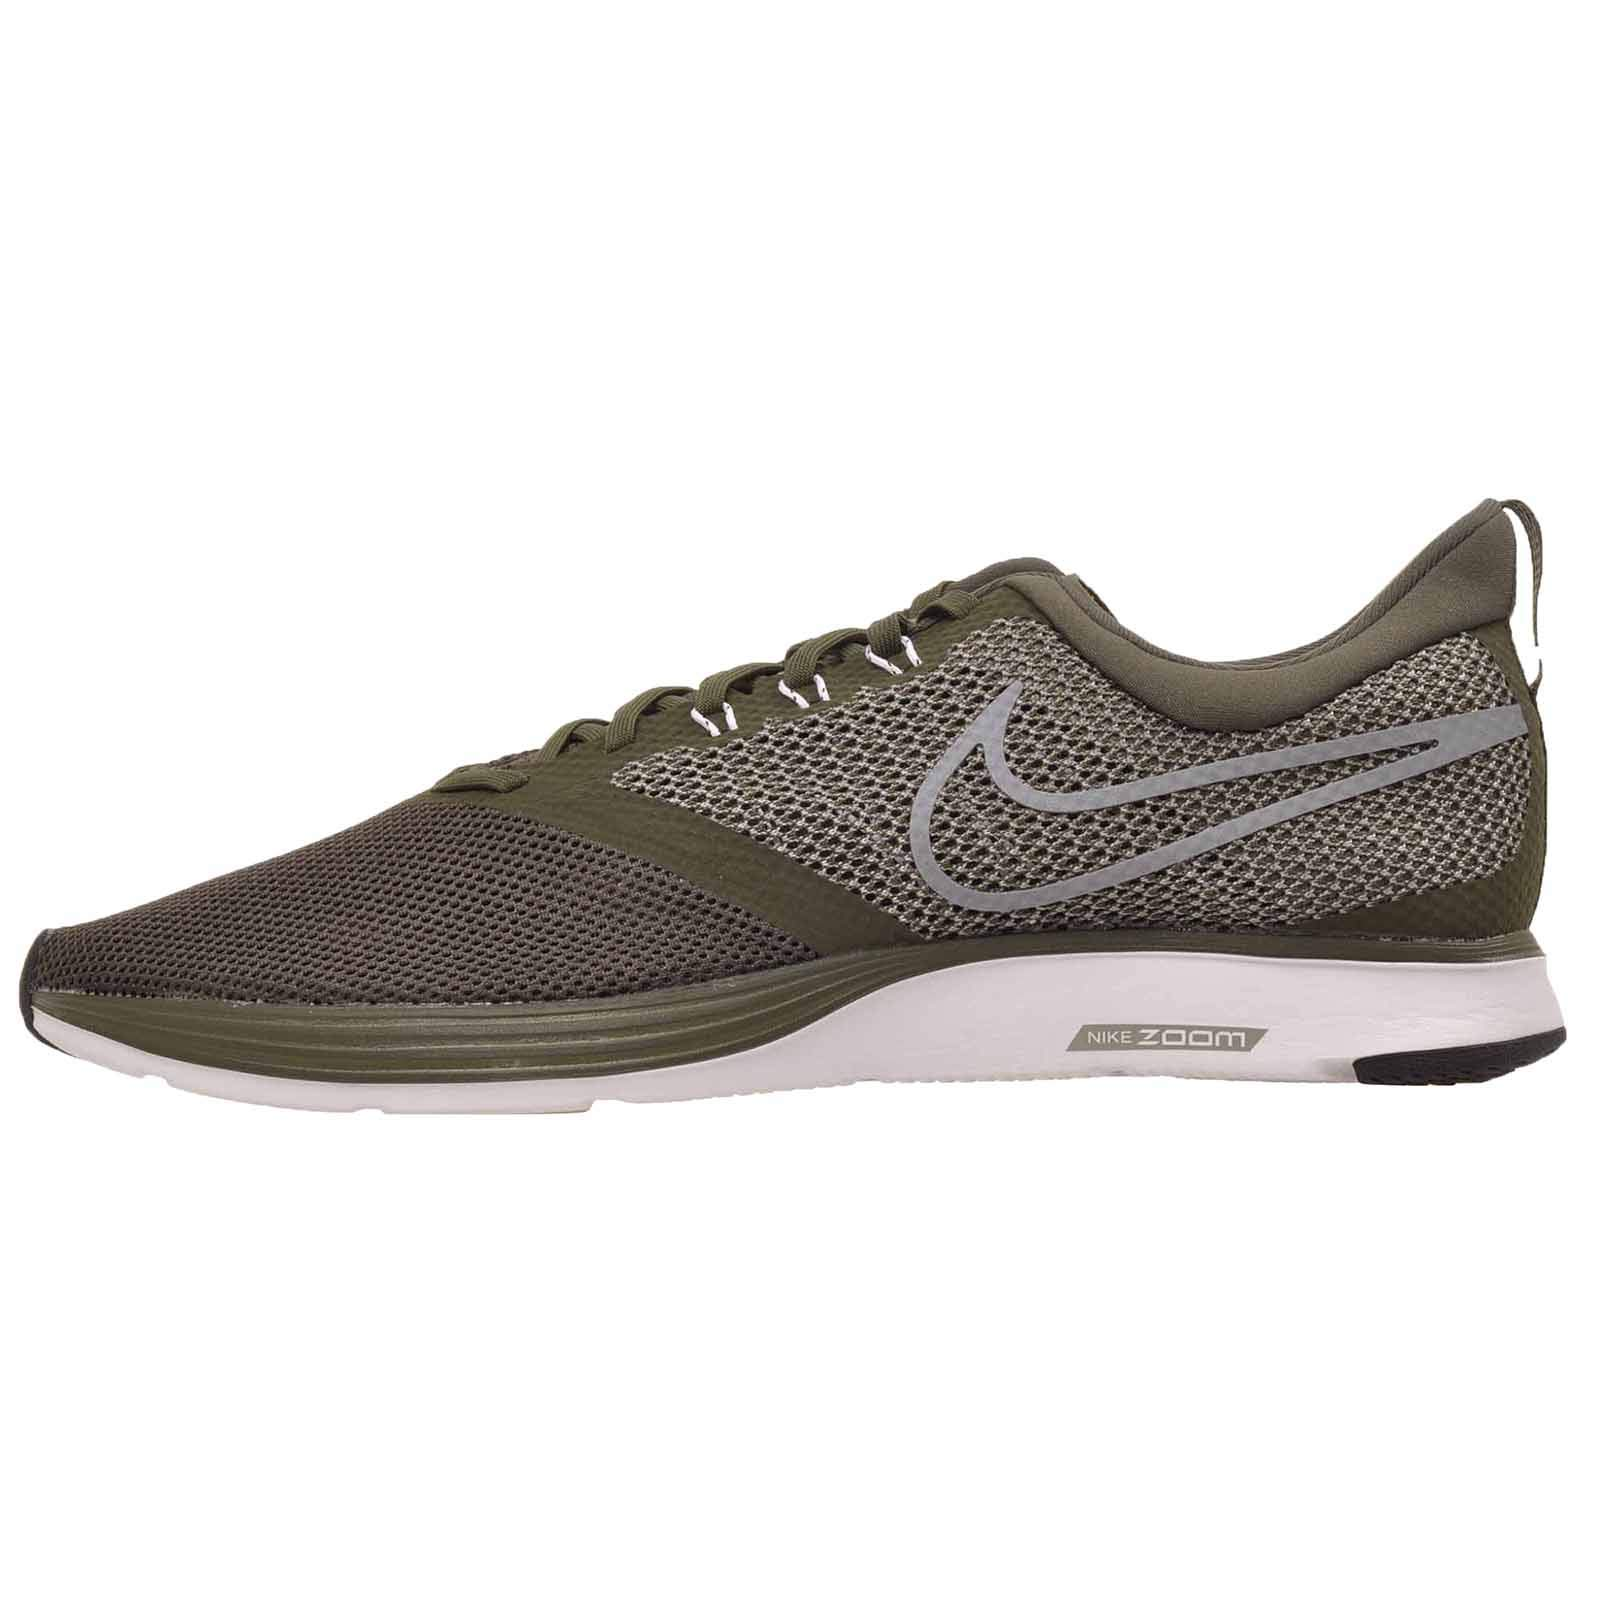 6b7c1b91928 Galleon - NIKE Men s Zoom Strike AJ0189 300 Cargo Khaki Cool Grey Training  Shoes (11.5 D US)